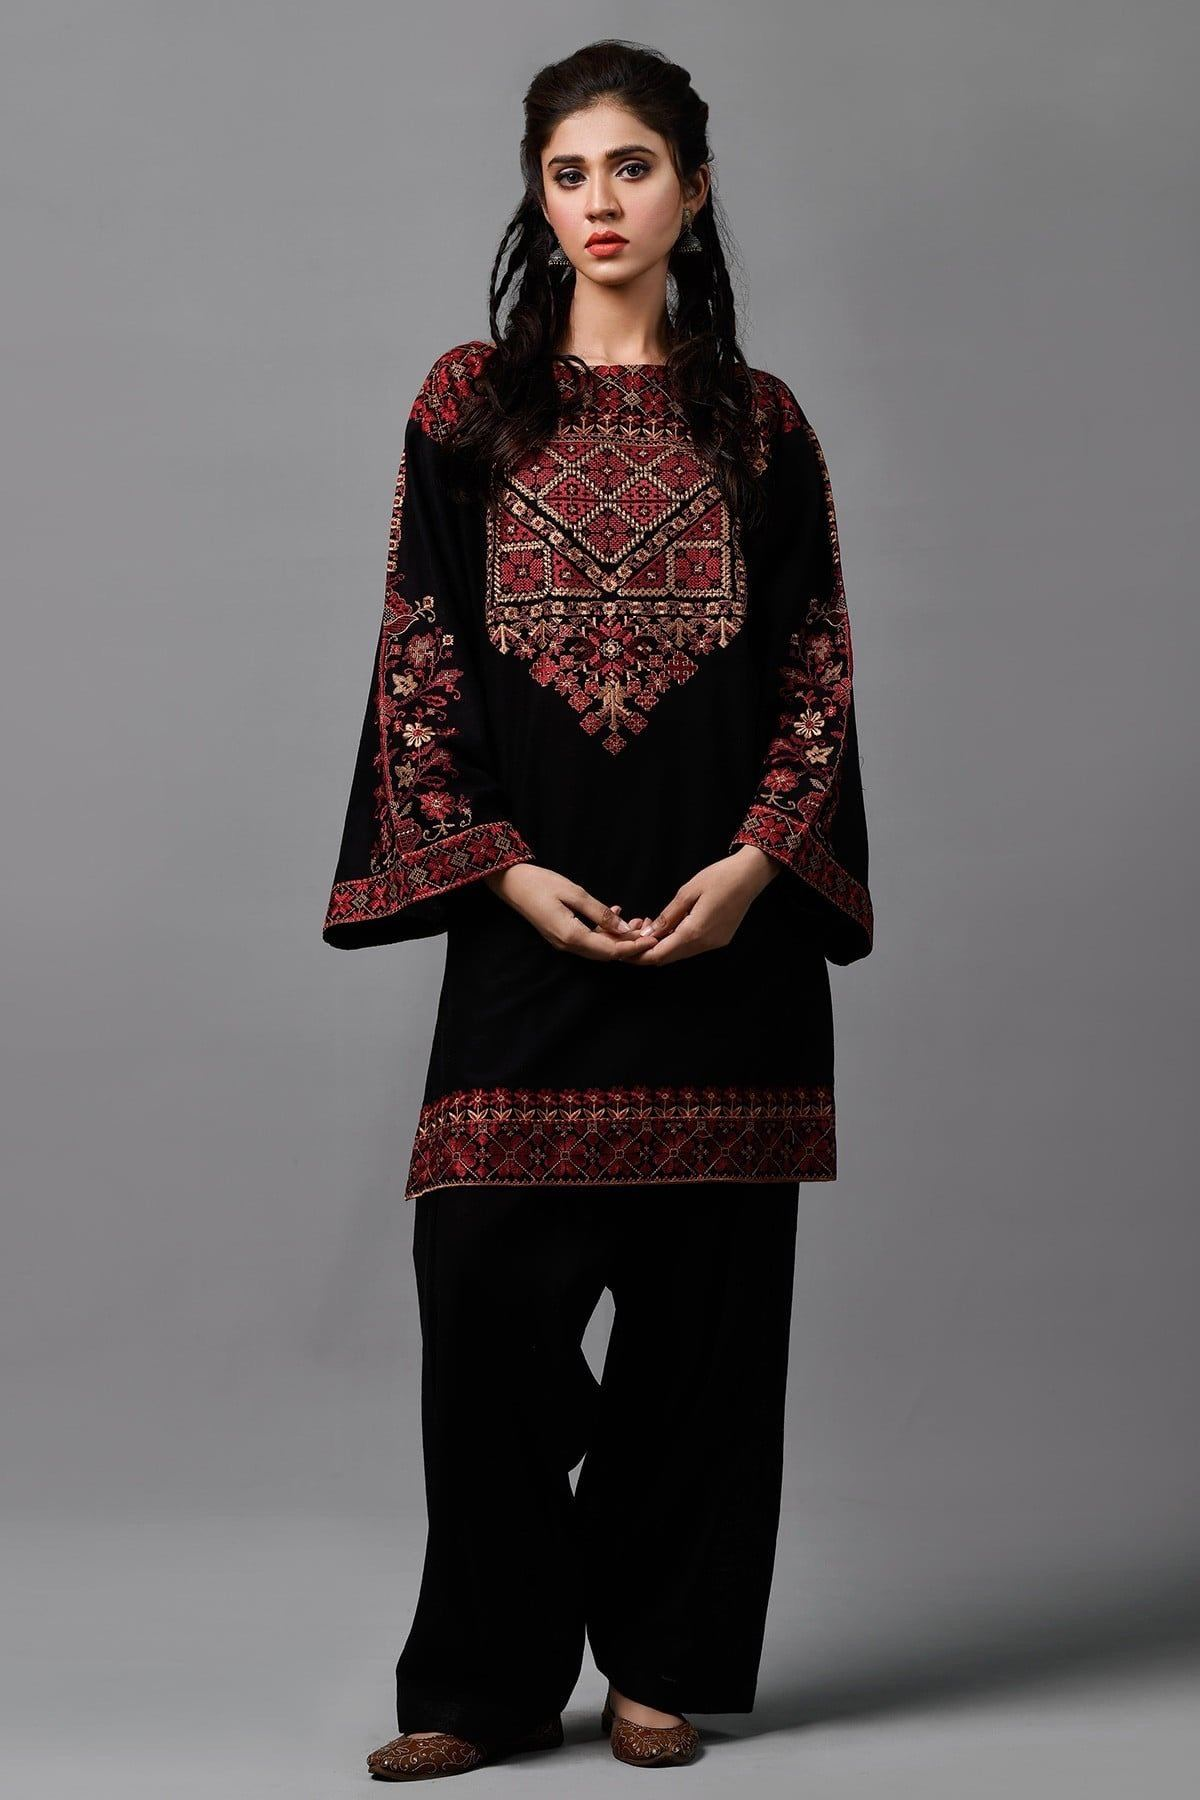 Kayseria Black-Embroided 2pc linen dress shirt & trouser.